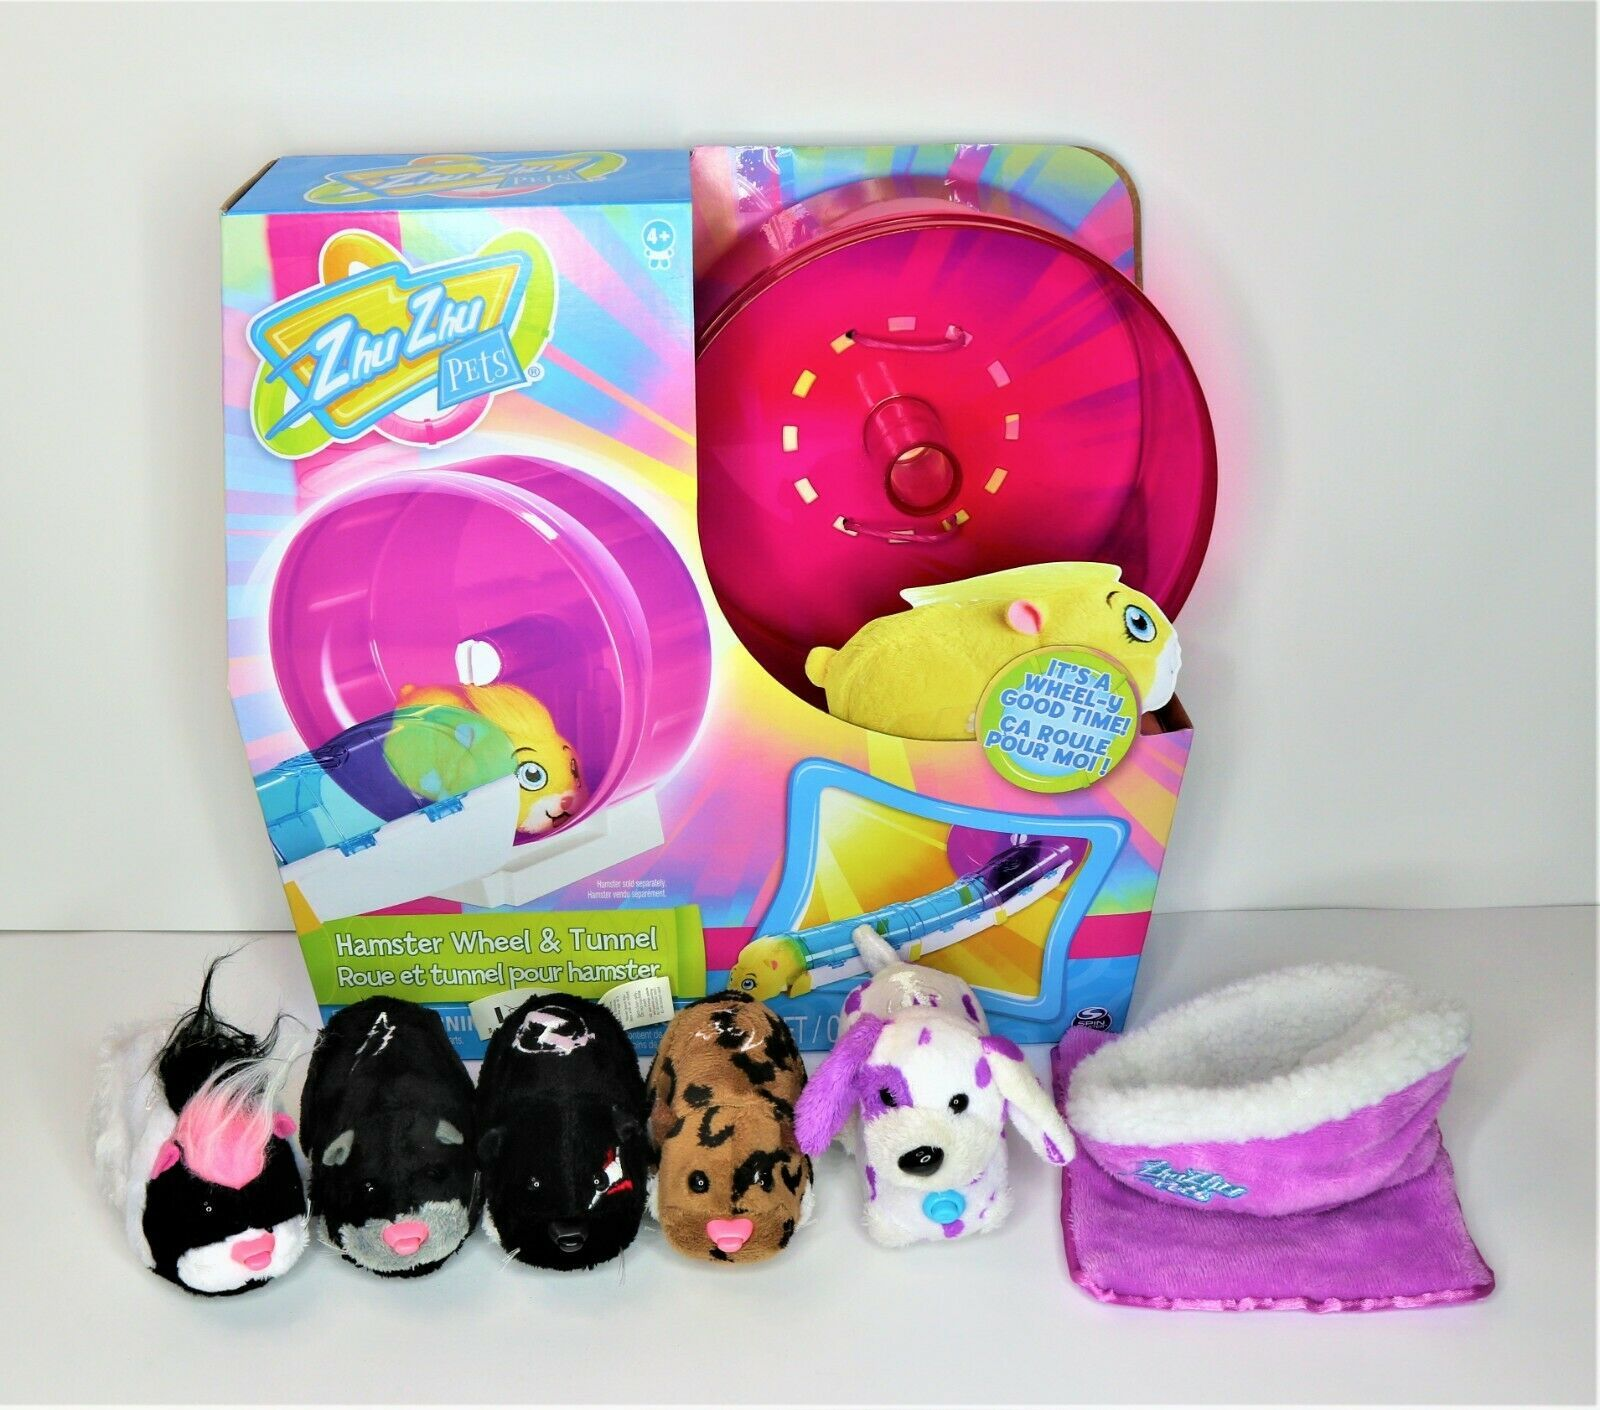 Details About Zhu Zhu Pets New Tunnel And Wheel And Lot Of 4 Hamsters And 1 Dog W Accessories In 2020 Pet News Hamster Pets